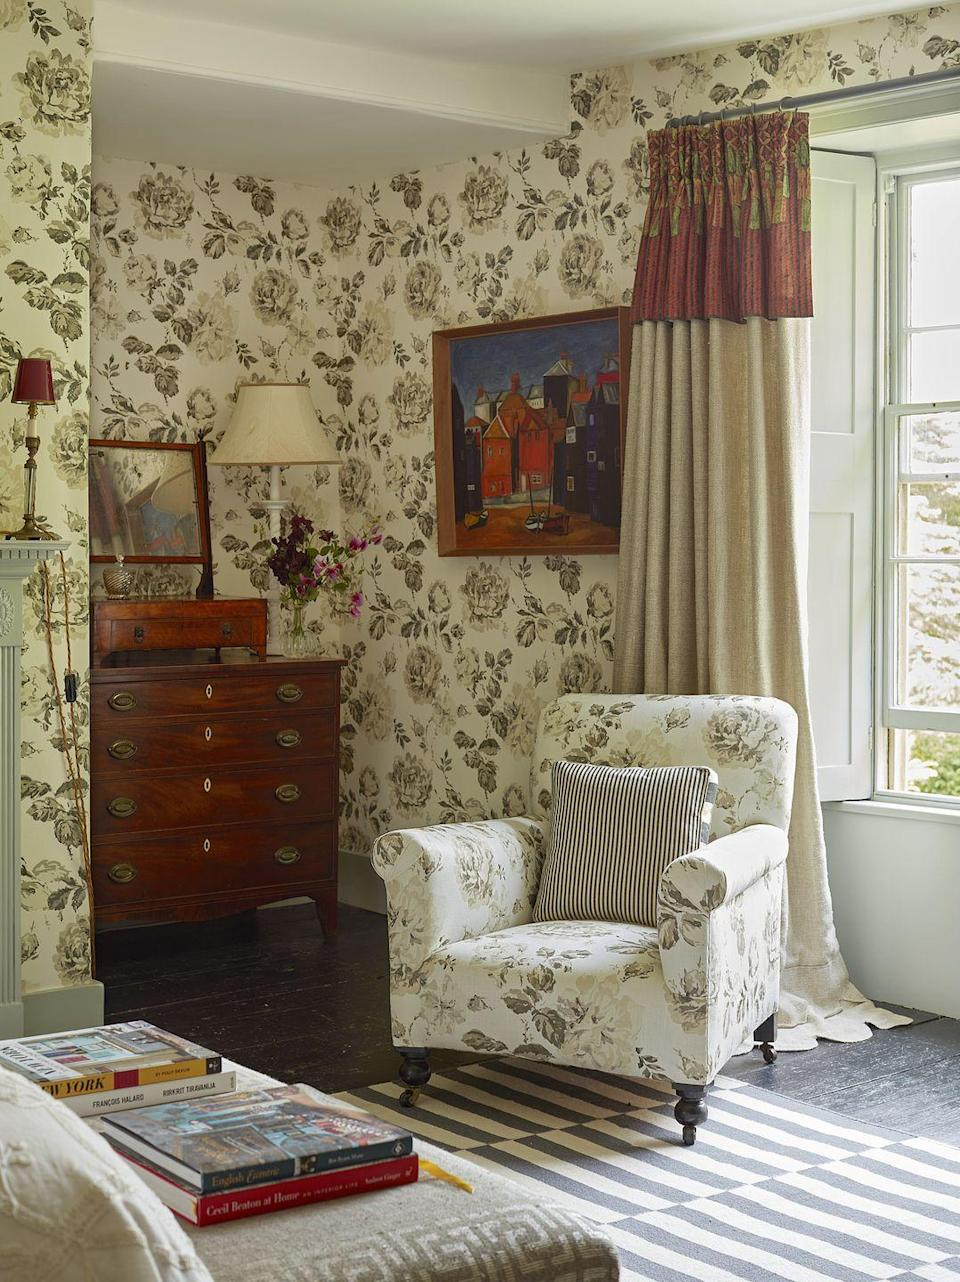 """<p>Textile designer Richard Smith loves to harness the power of sepia, especially in a bedroom. """"I've always loved the palette's simple beauty,"""" he says. """"And the red drapery pelmets add a bit of humor.""""</p>"""